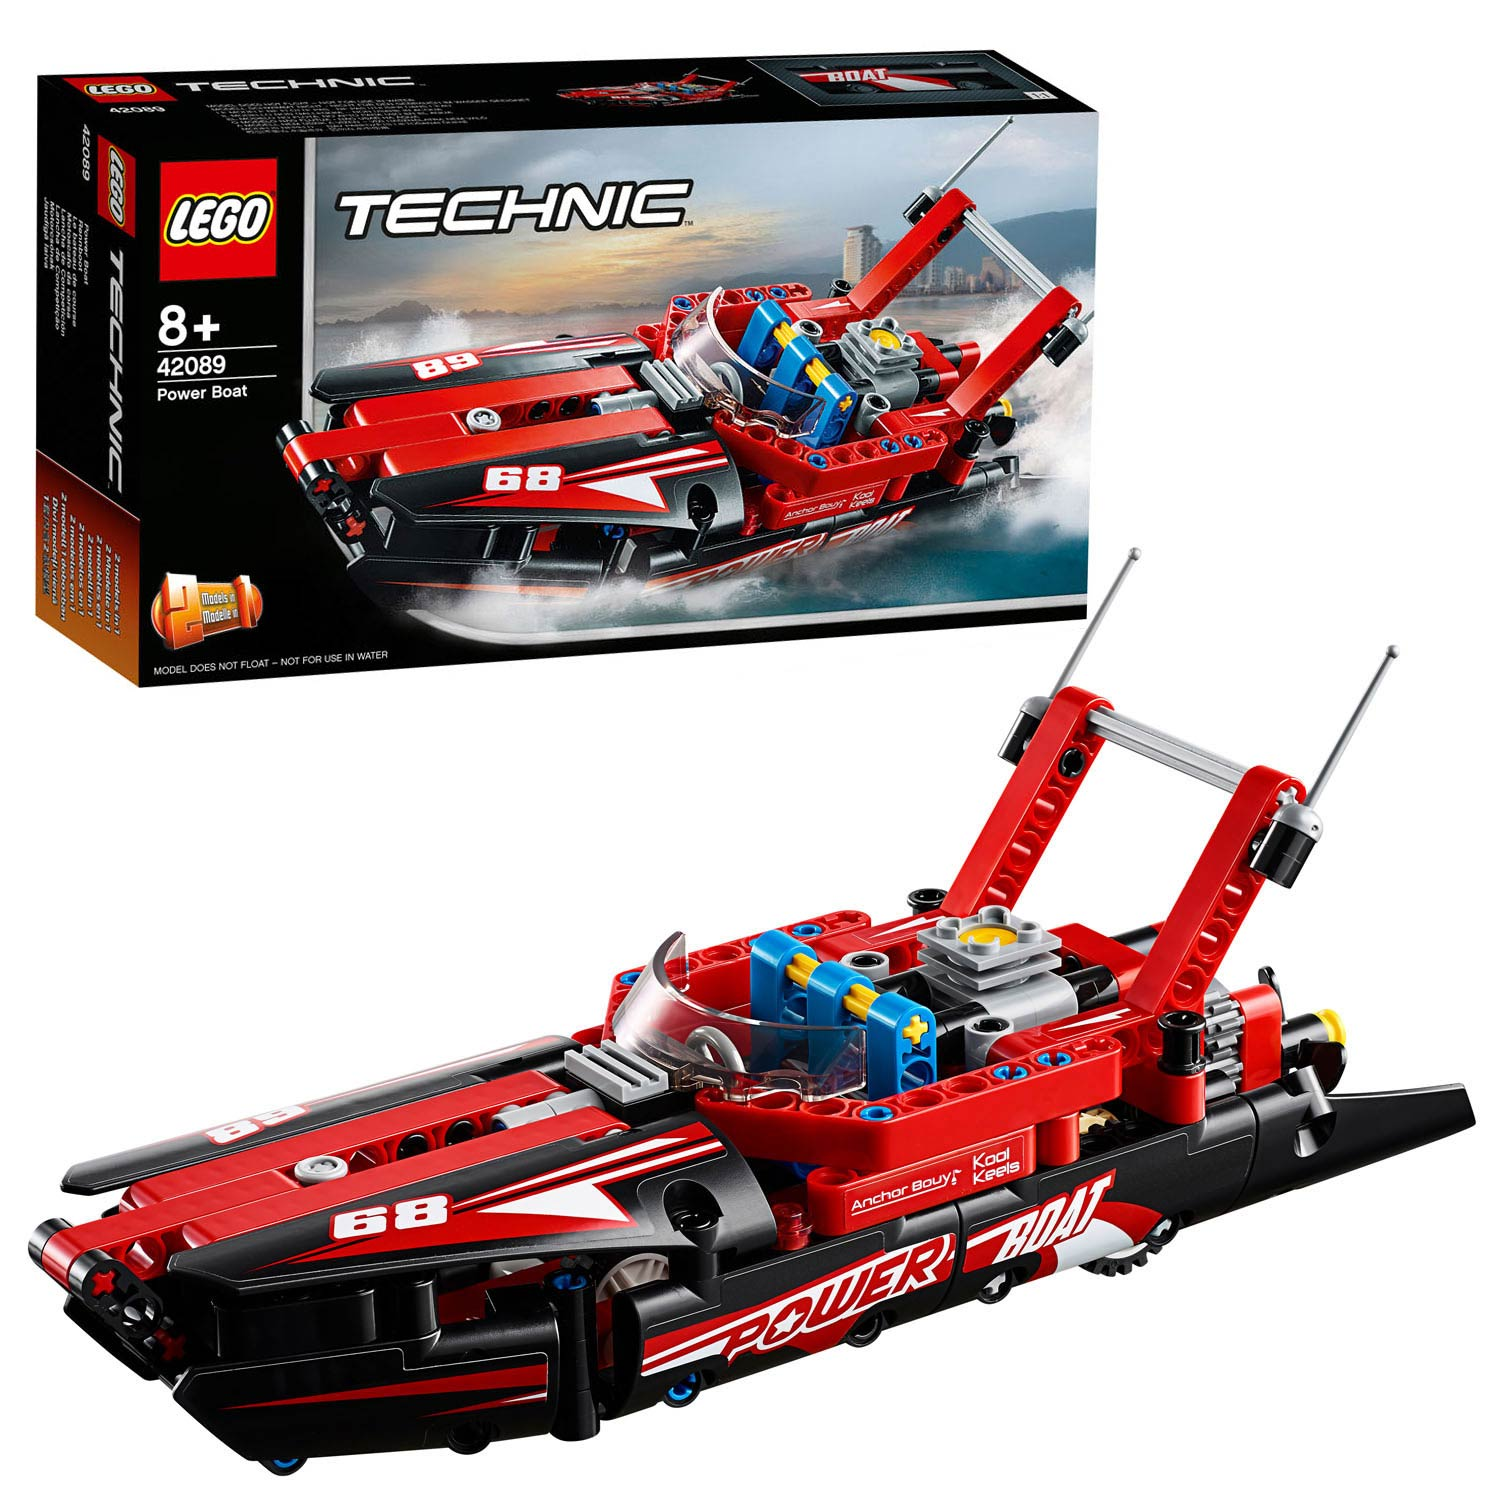 LEGO Technic 42089 Powerboat